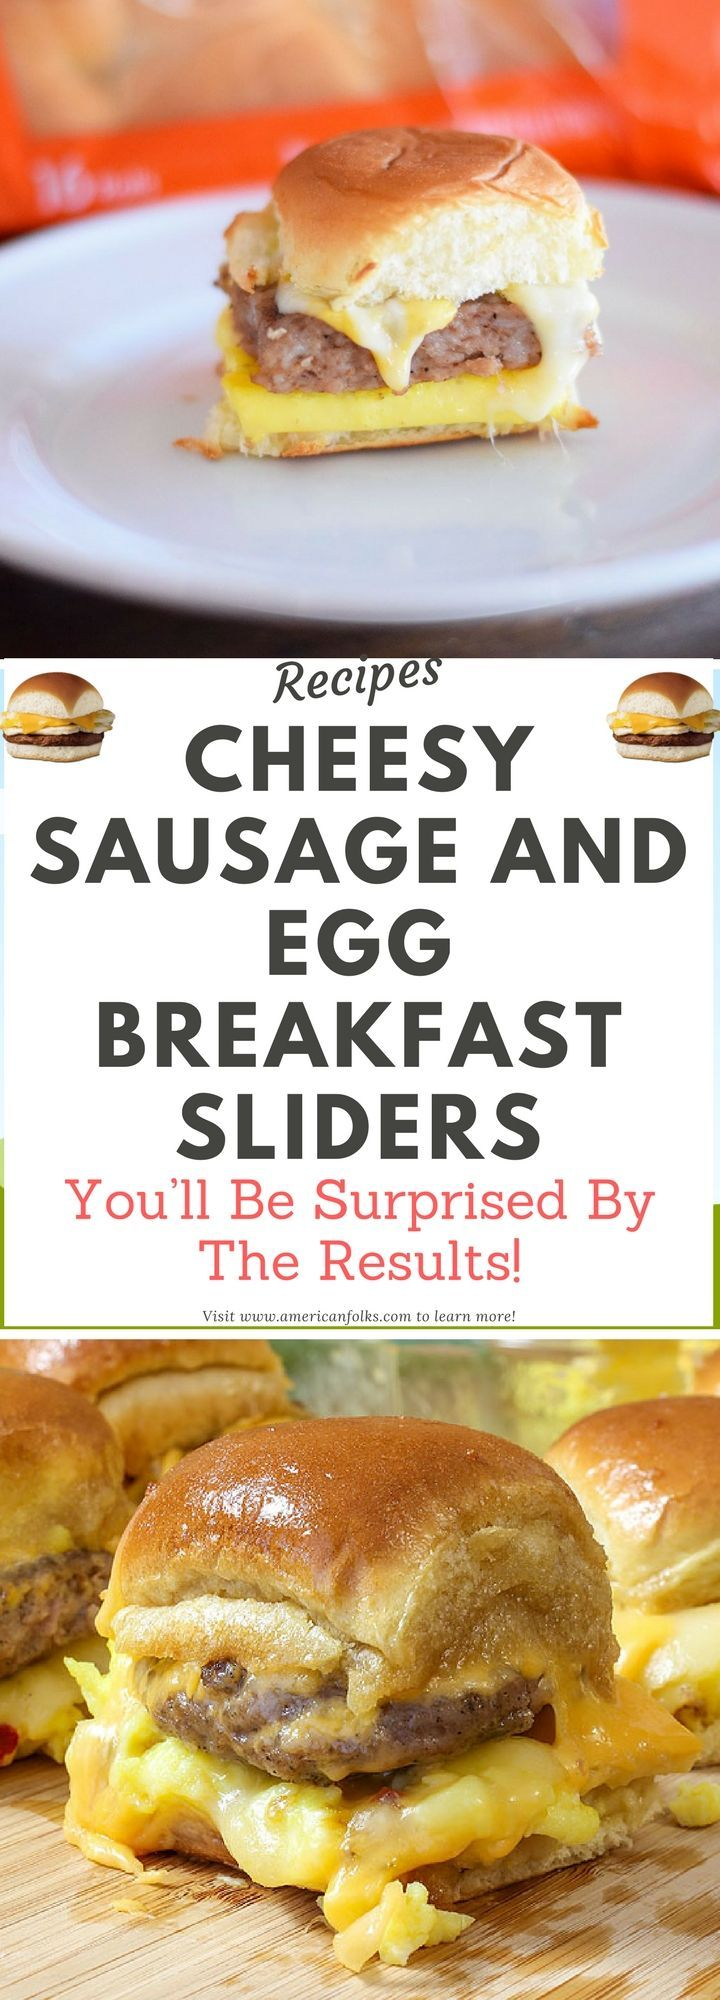 Cheesy Sausage and Egg Breakfast Sliders!!! !!!